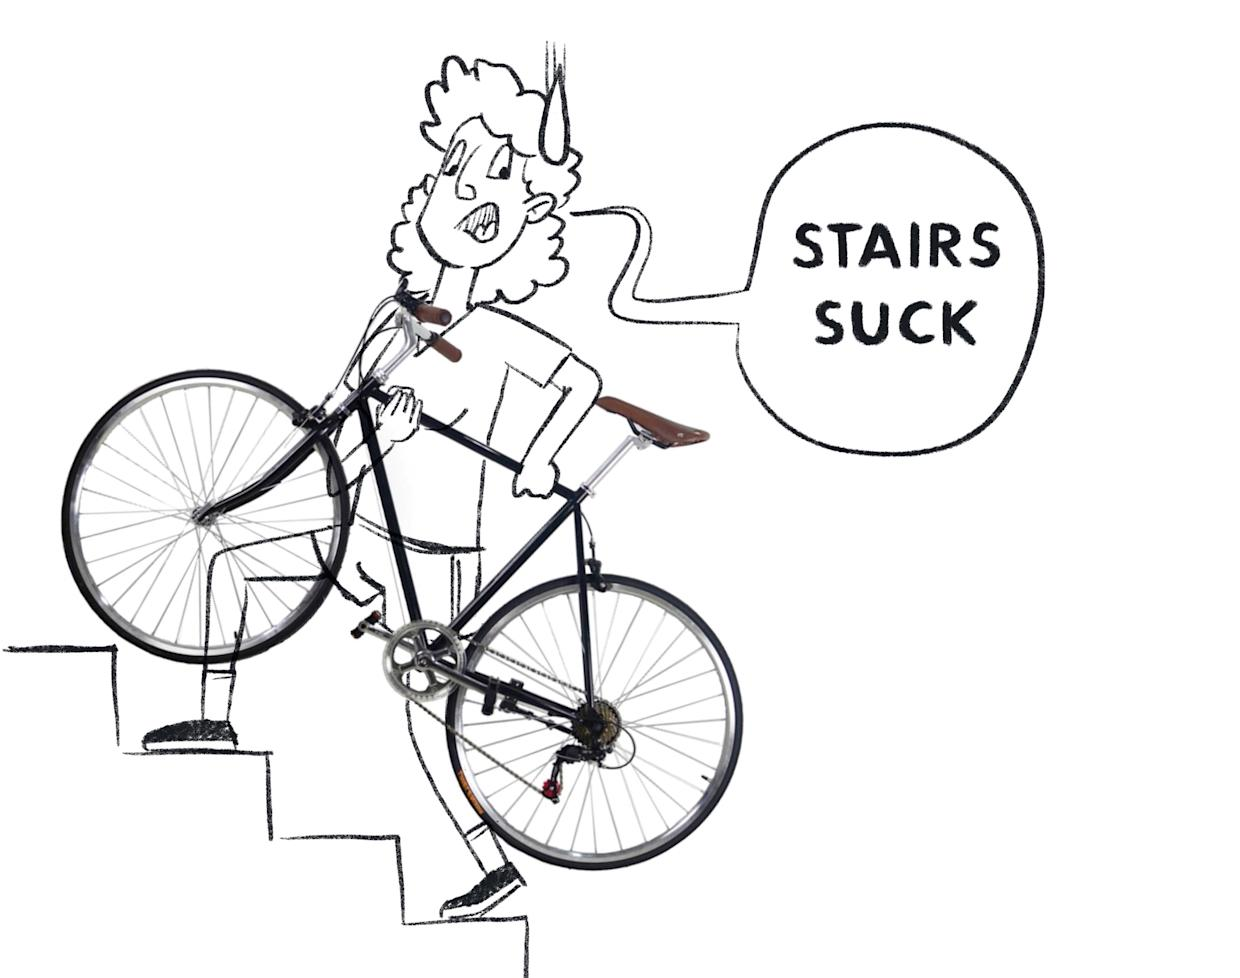 In Amsterdam, stairs really suck.